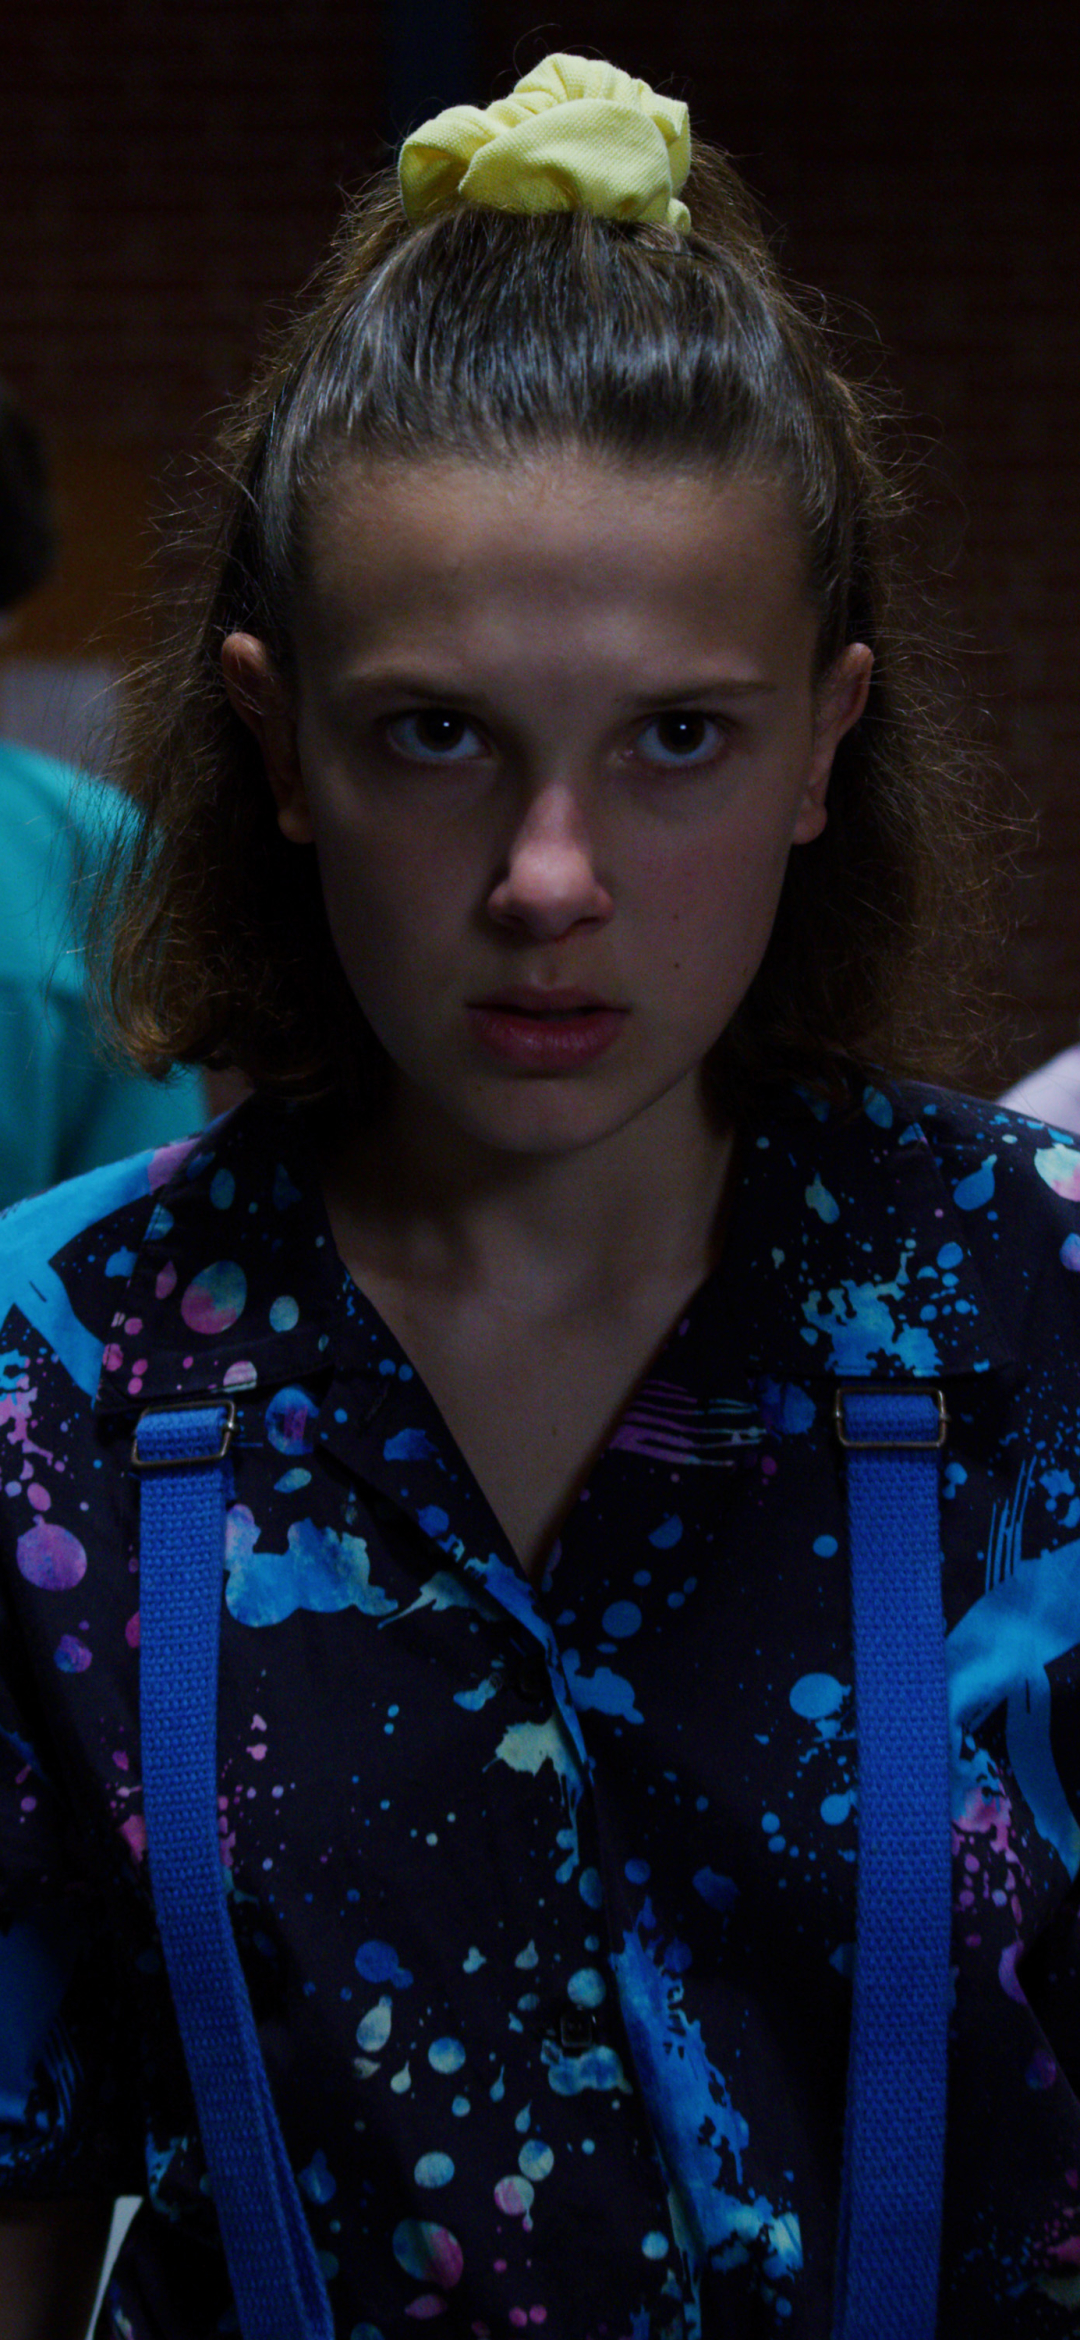 Tv Showstranger Things 1080x2340 Wallpaper Id 802761